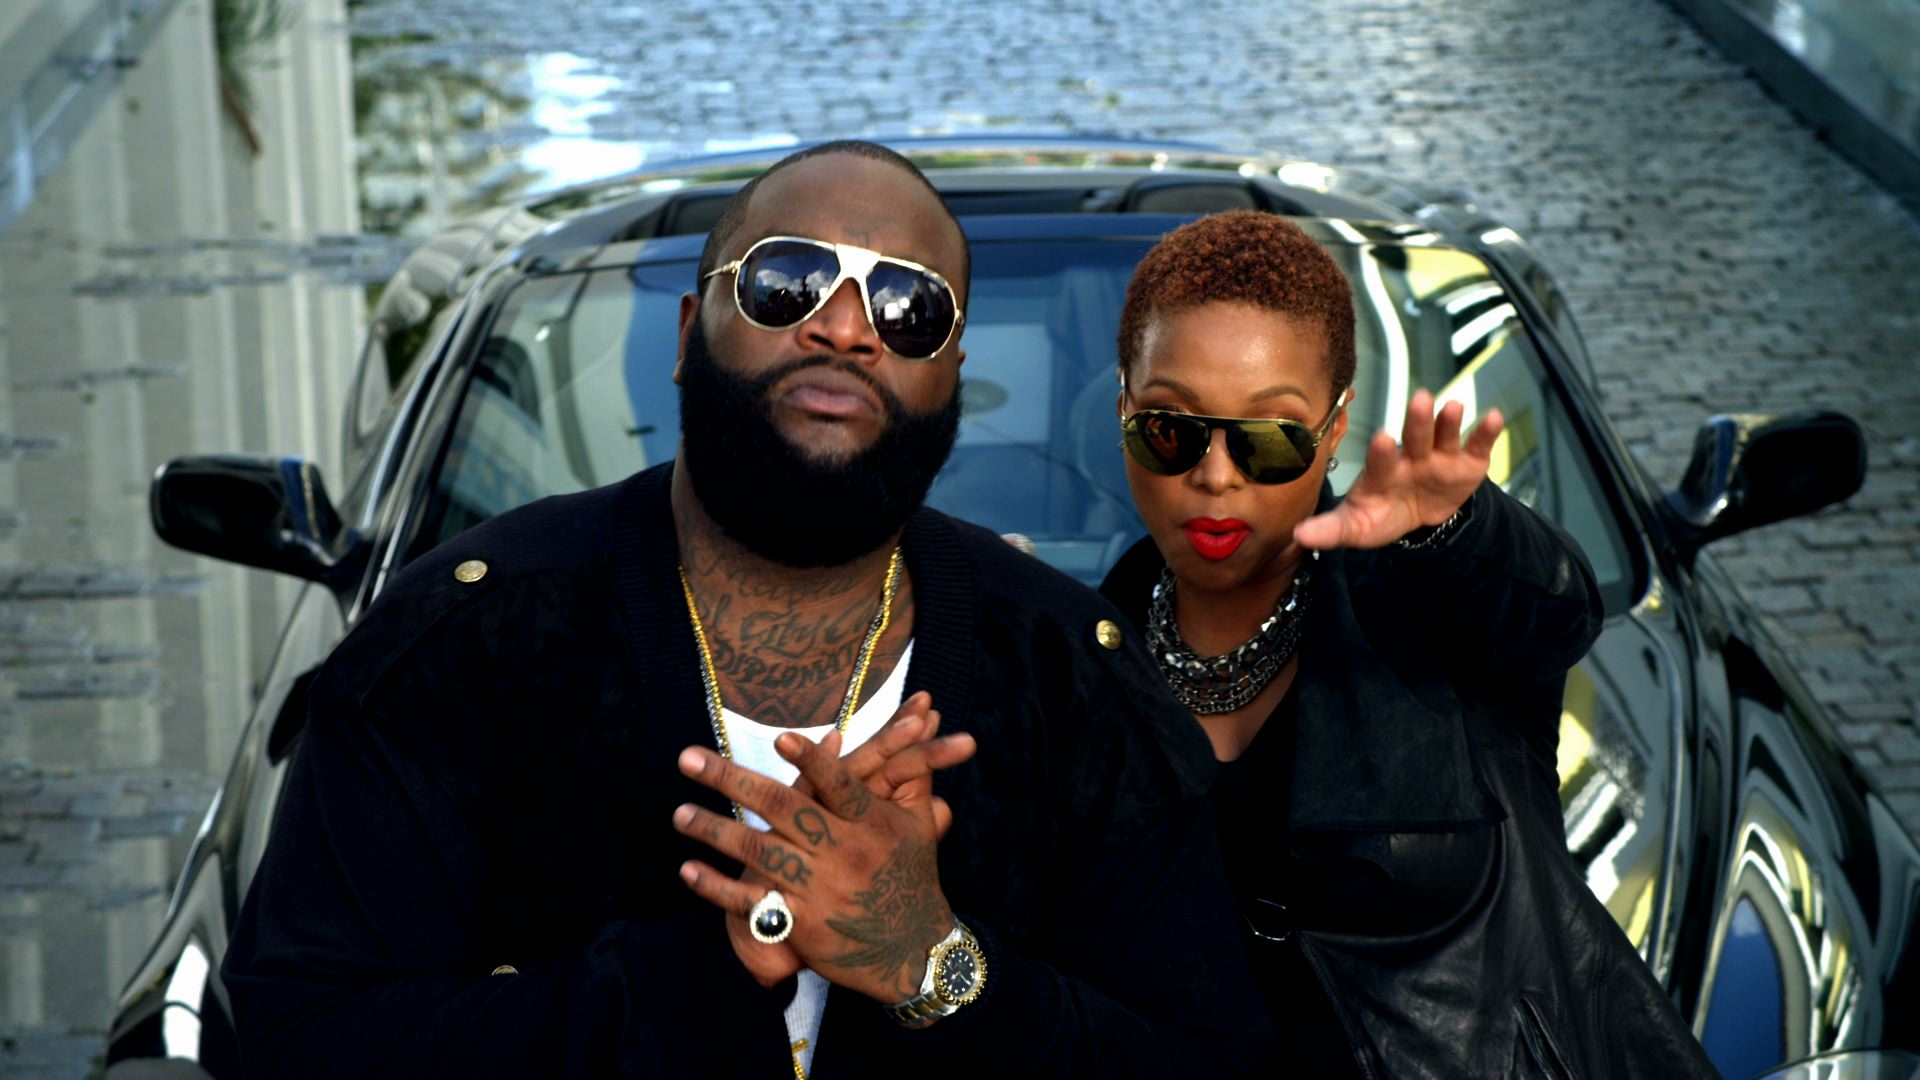 <h2>Rick Ross &#038; Drake</h2><h3>Aston Martin Music</h3>